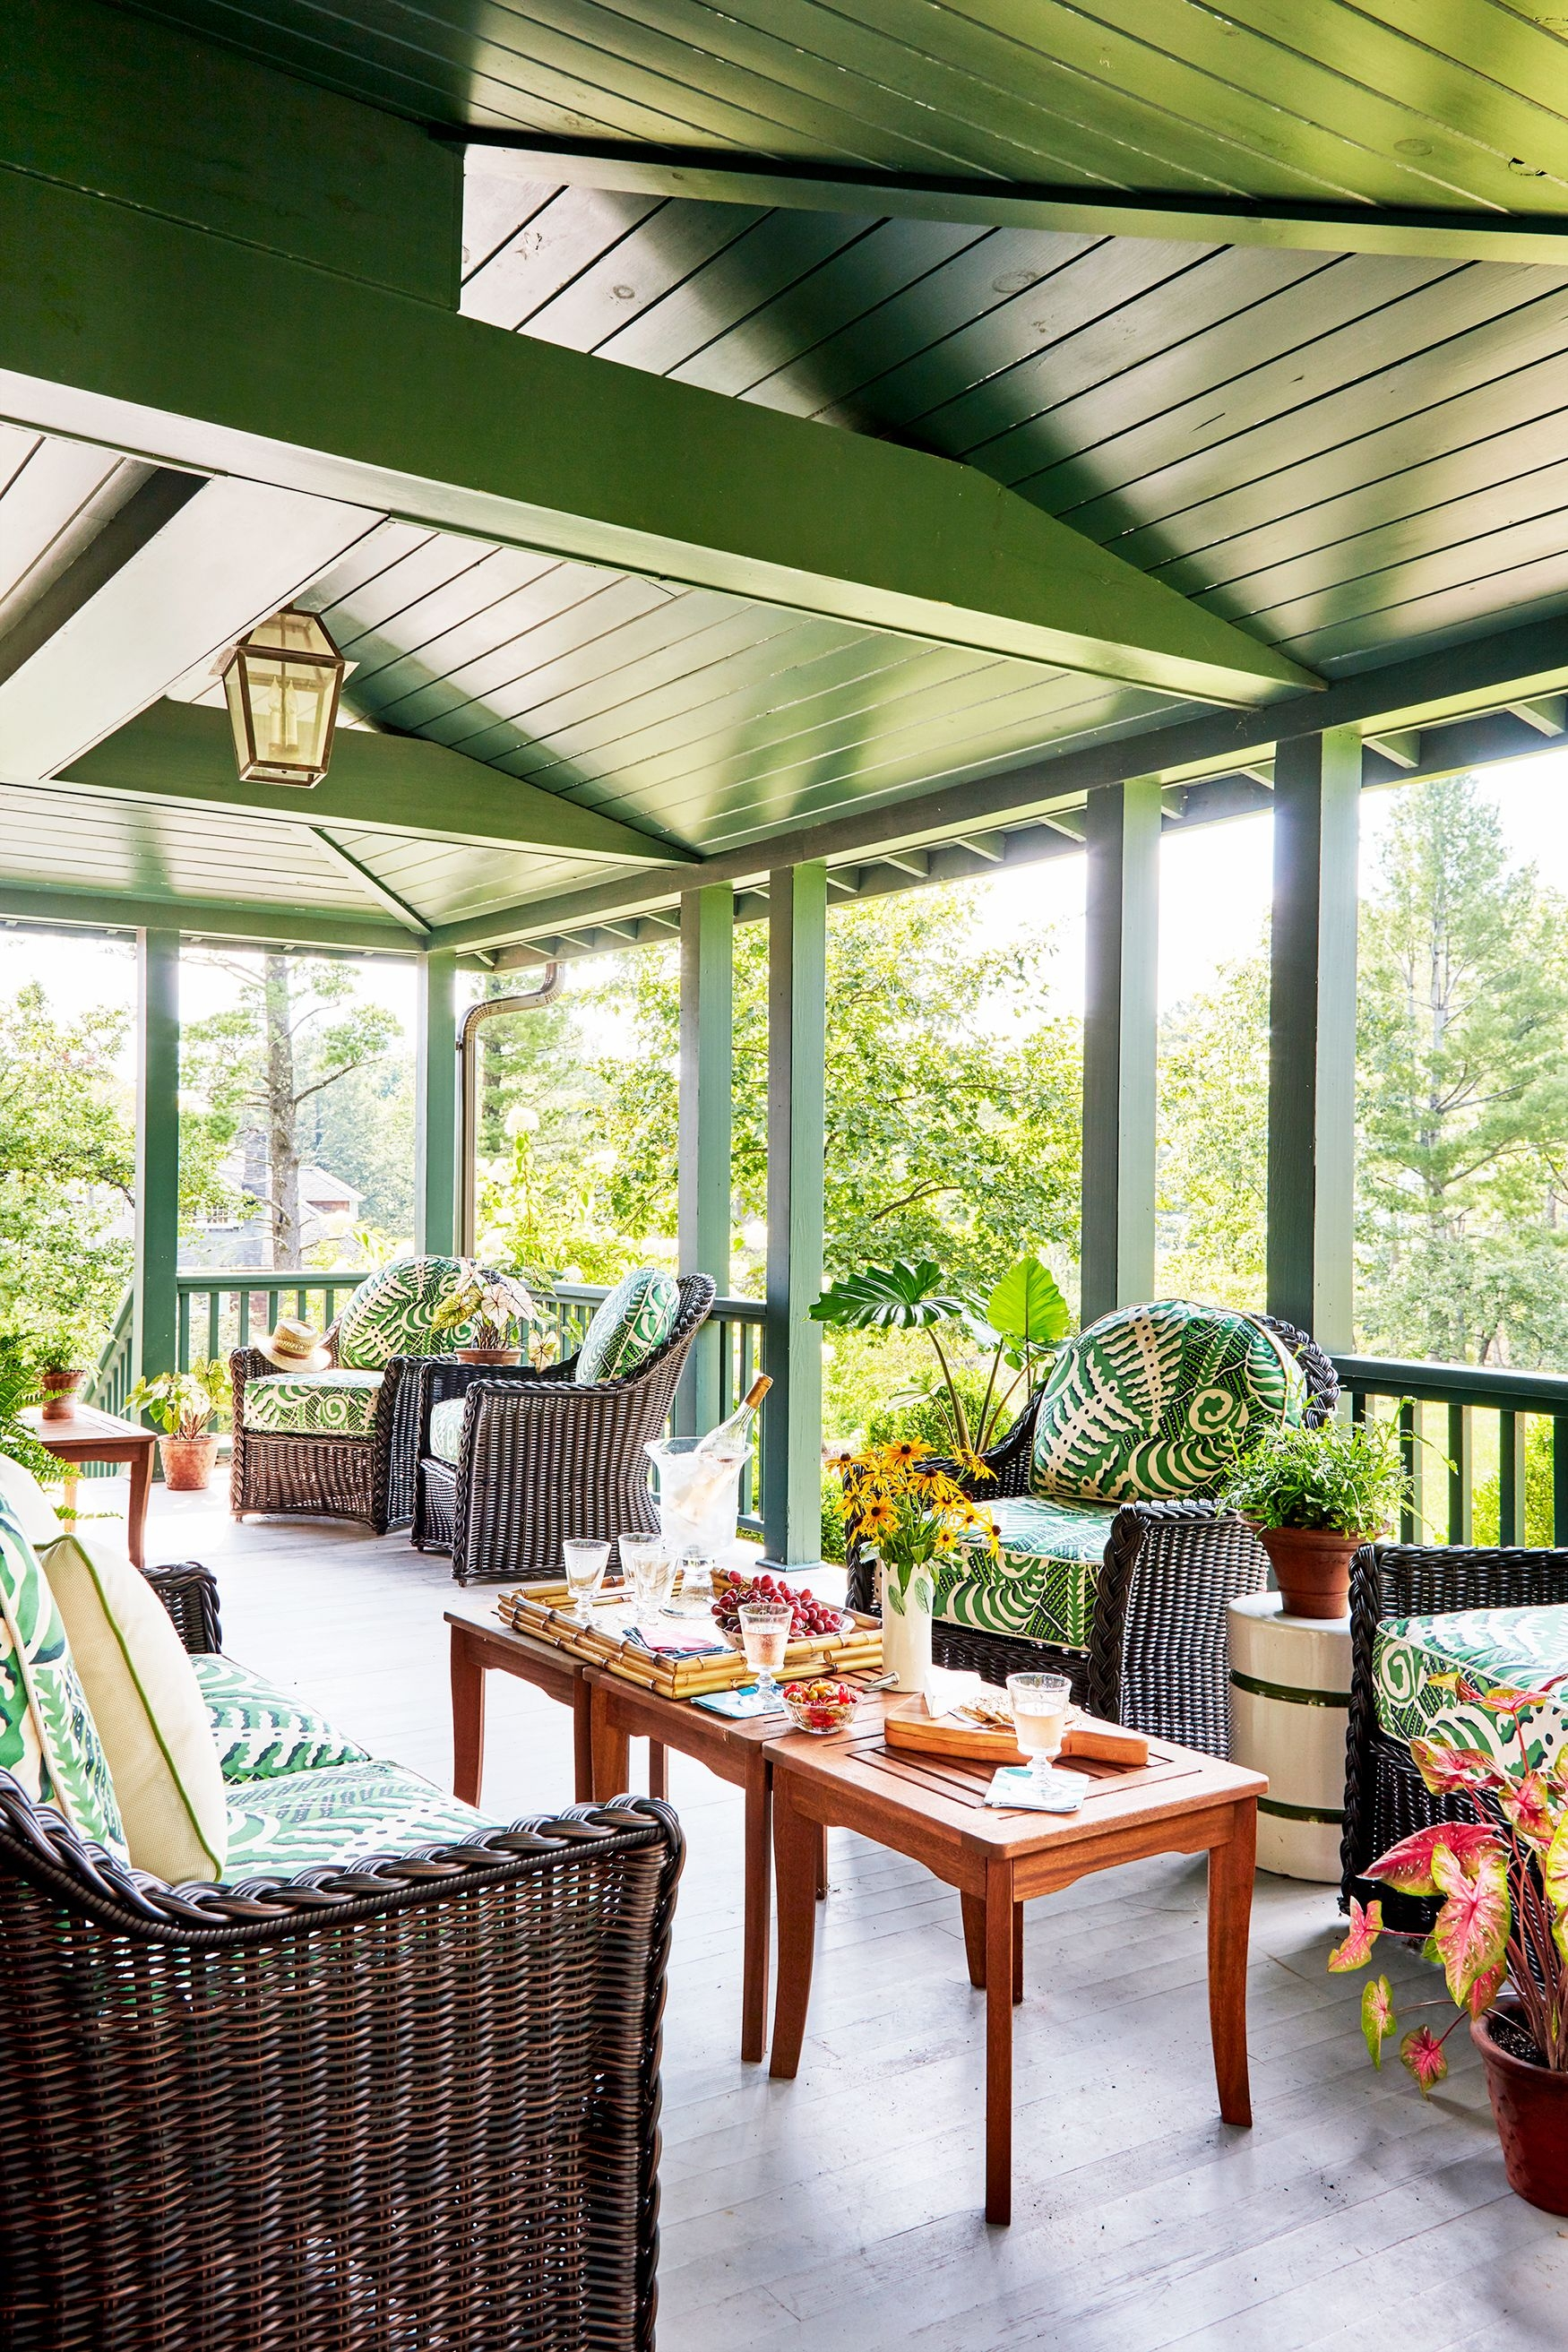 36 Charming Front Porch Ideas Porch Design And Decorating Tips | House Front Step Design | Aspen Designer Home | Simple | Mansion | Curved | Entrance Home